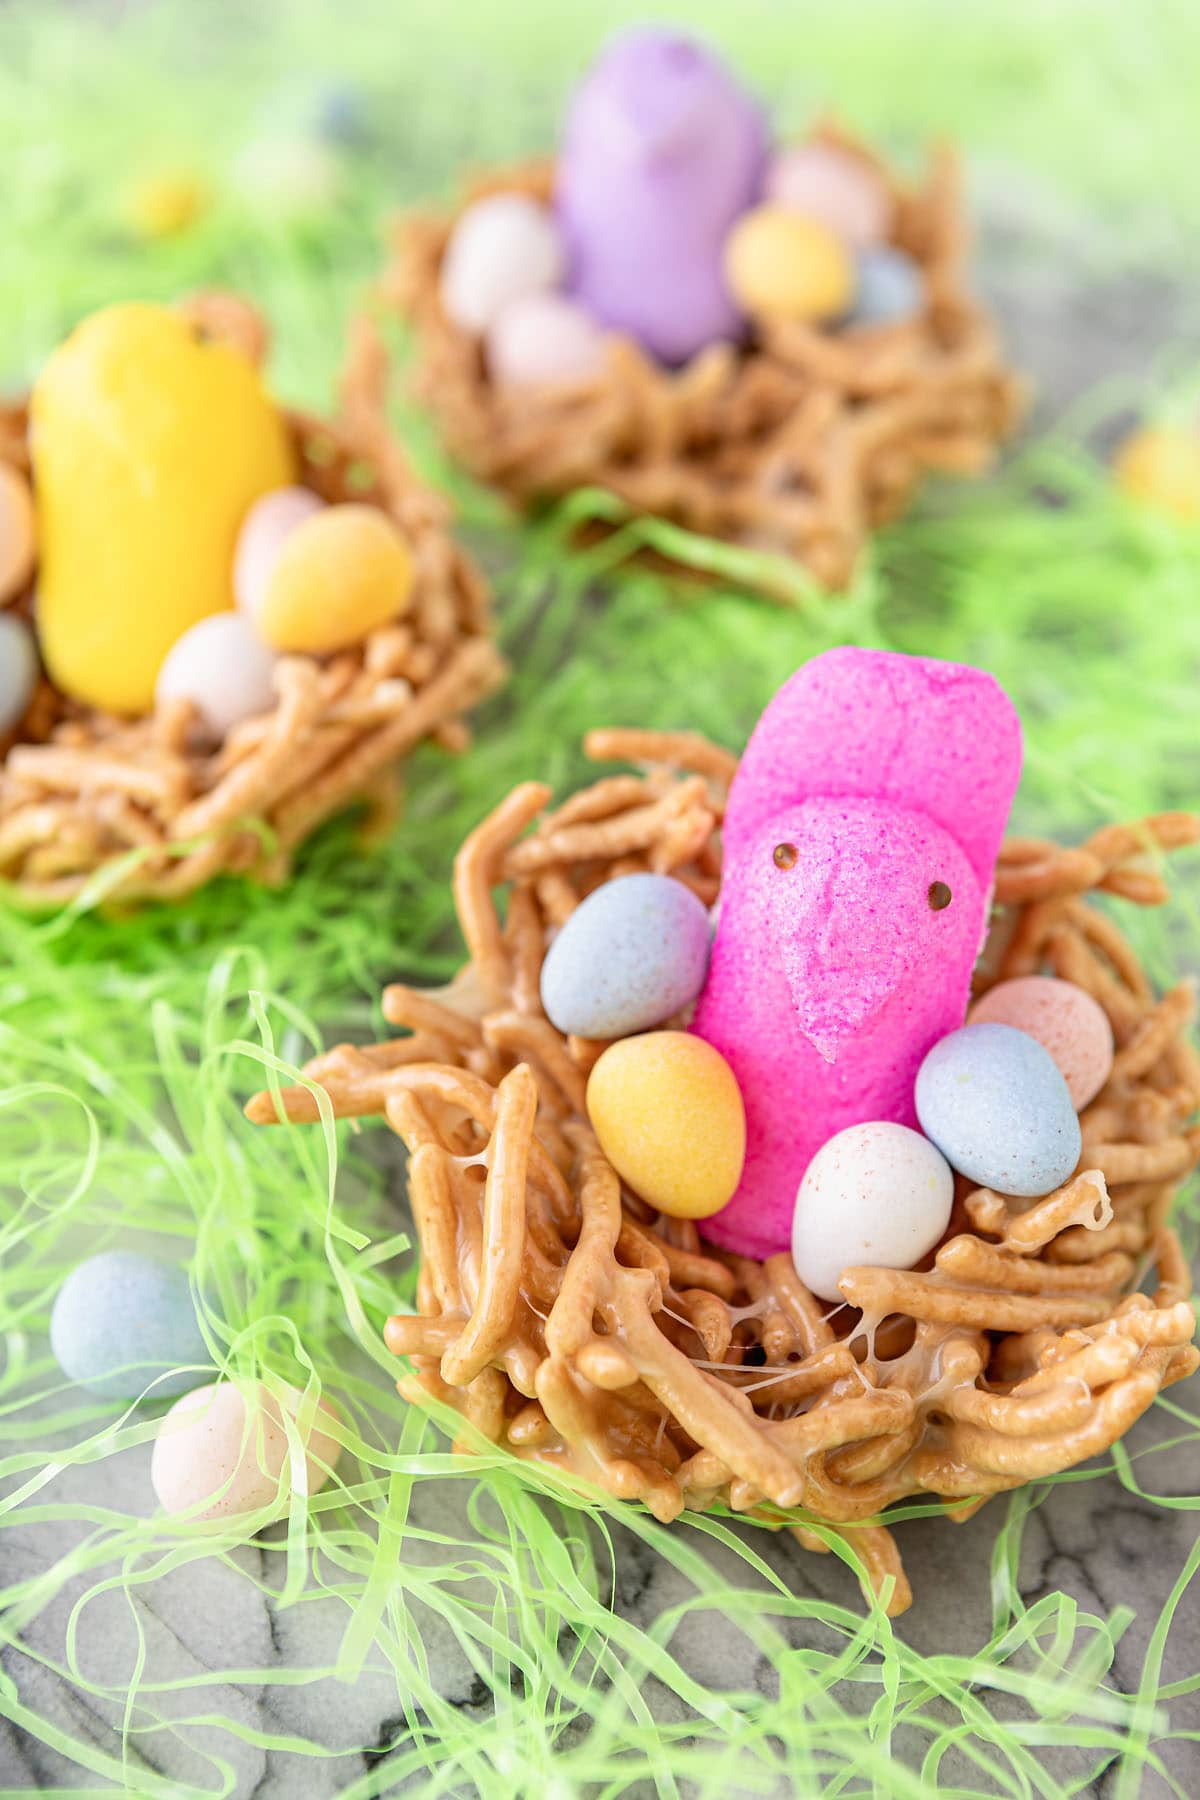 edible birds nests for easter with peeps and candy eggs